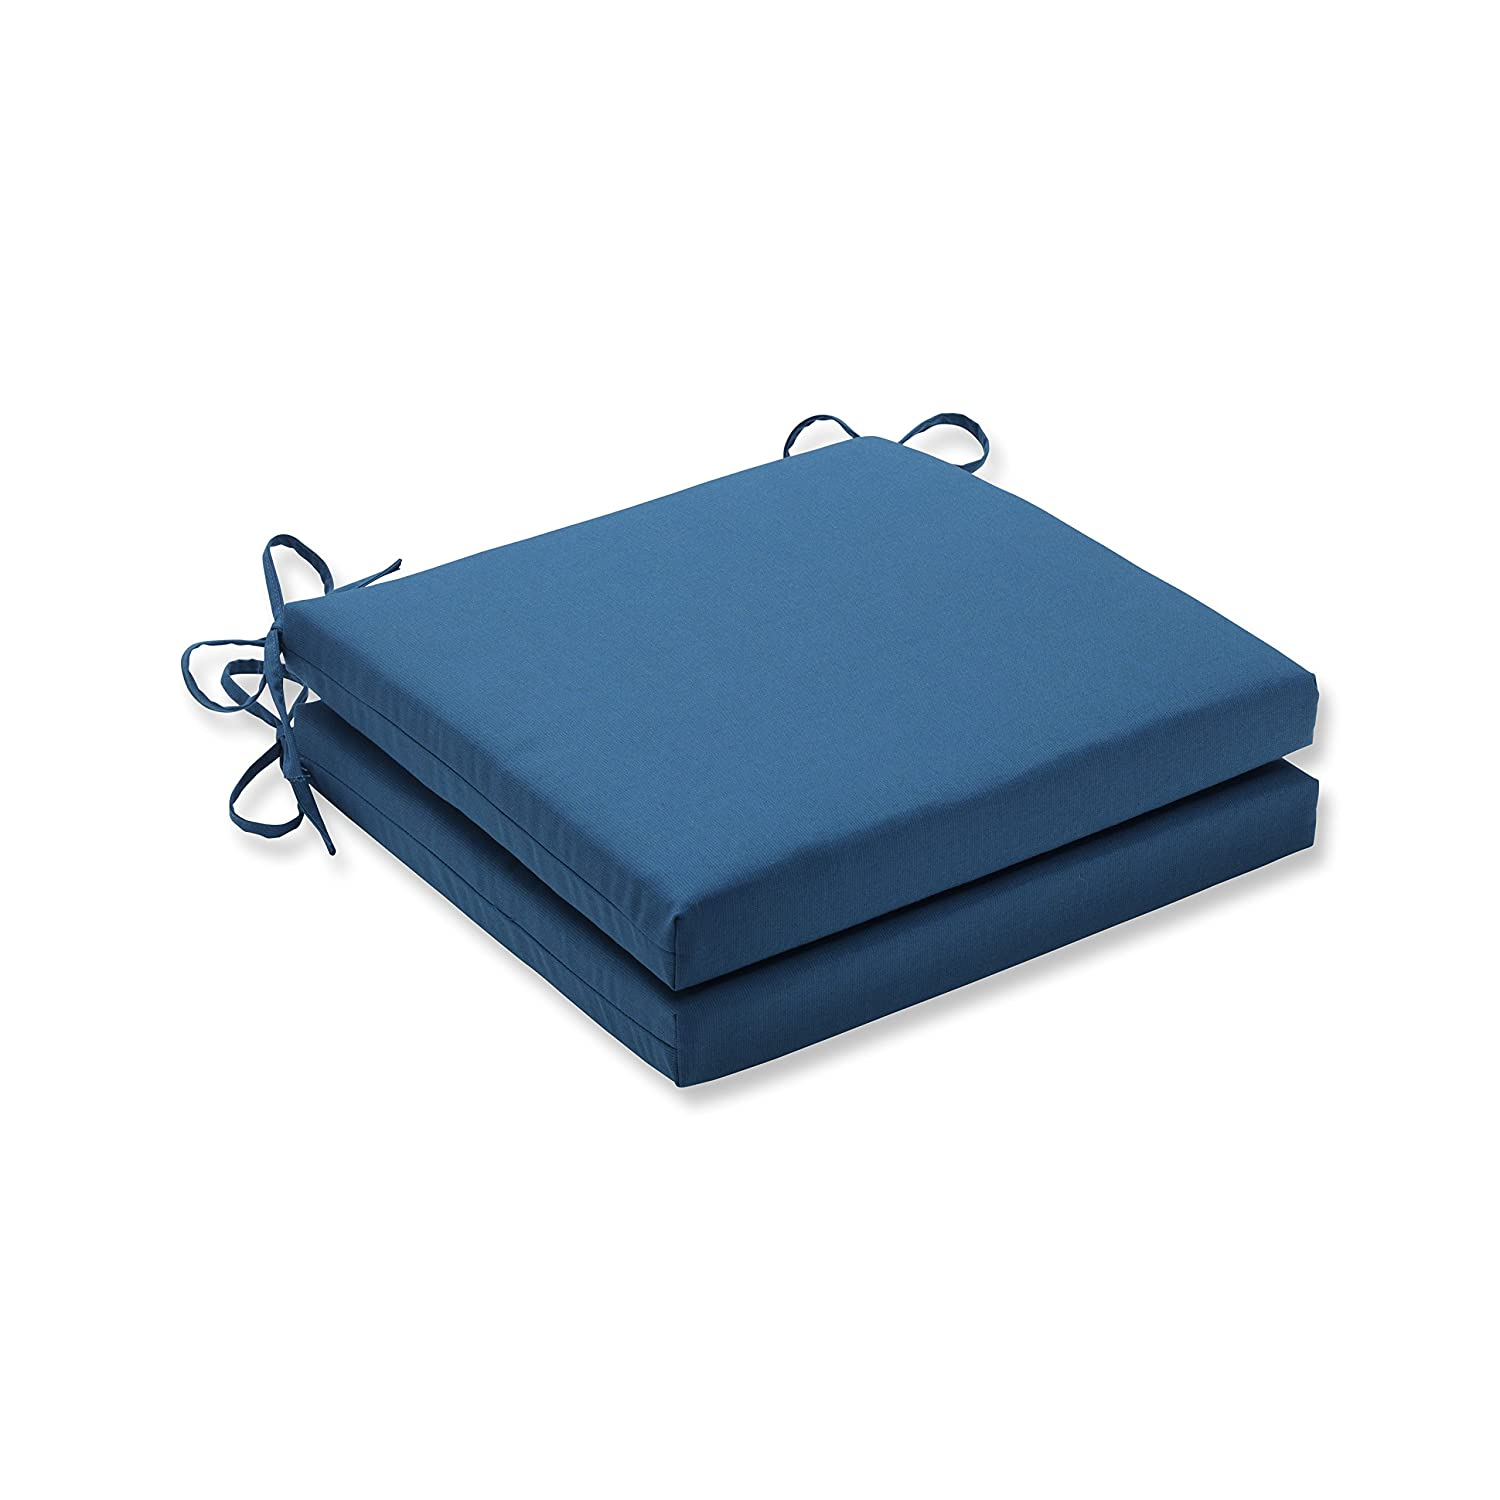 Pillow Perfect Indoor Outdoor Squared Corners Seat Cushion Set of 2 with Sunbrella Spectrum Peacock Fabric, 20 in. L X 20 in. W X 3 in. D